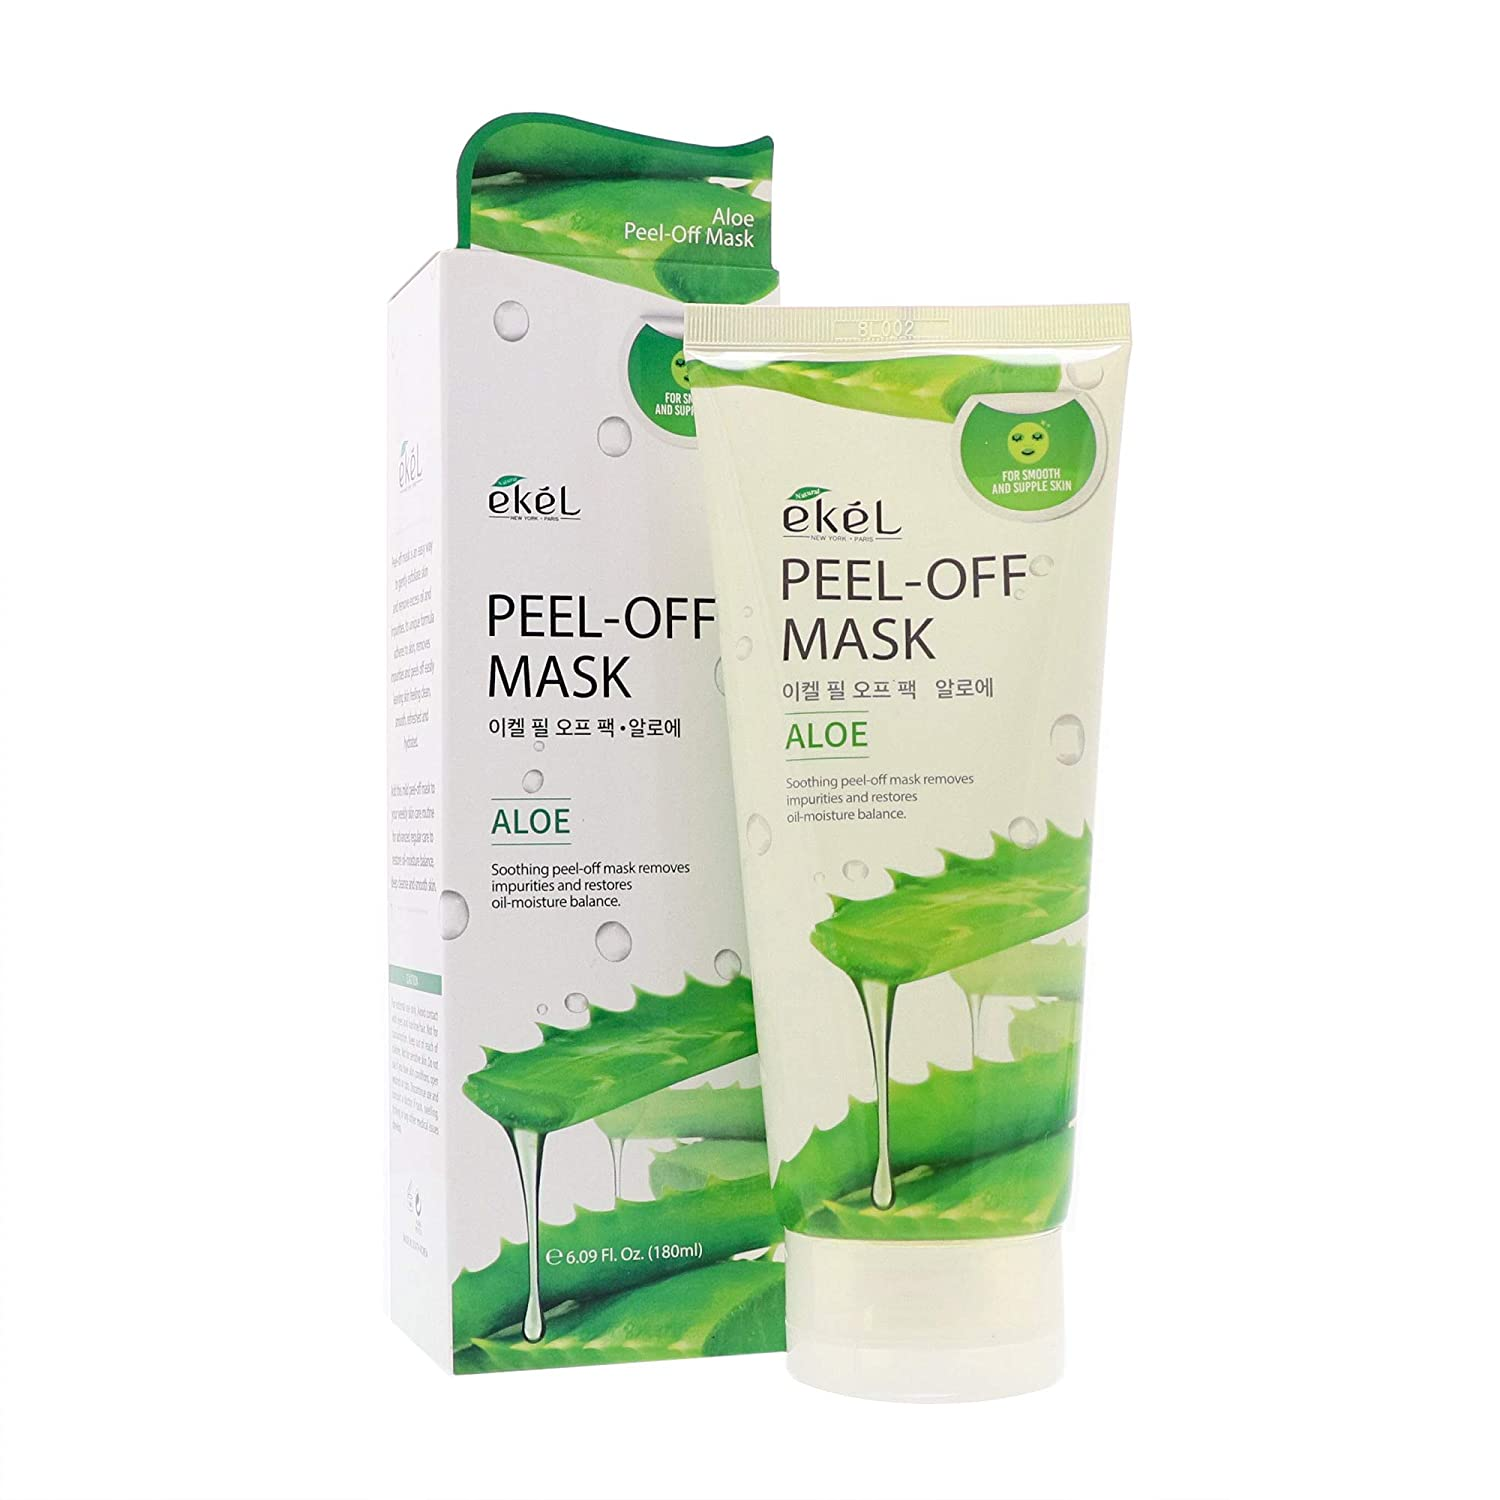 Ekel Peel Off Mask Aloe - Soothing Mask Packed with Vitamins, Choline, Salicylic Acid and Folic Acid - Removes Impurities and Restores Oil-Moisture Balance Leaving Smooth and Supple Skin 6.09 oz